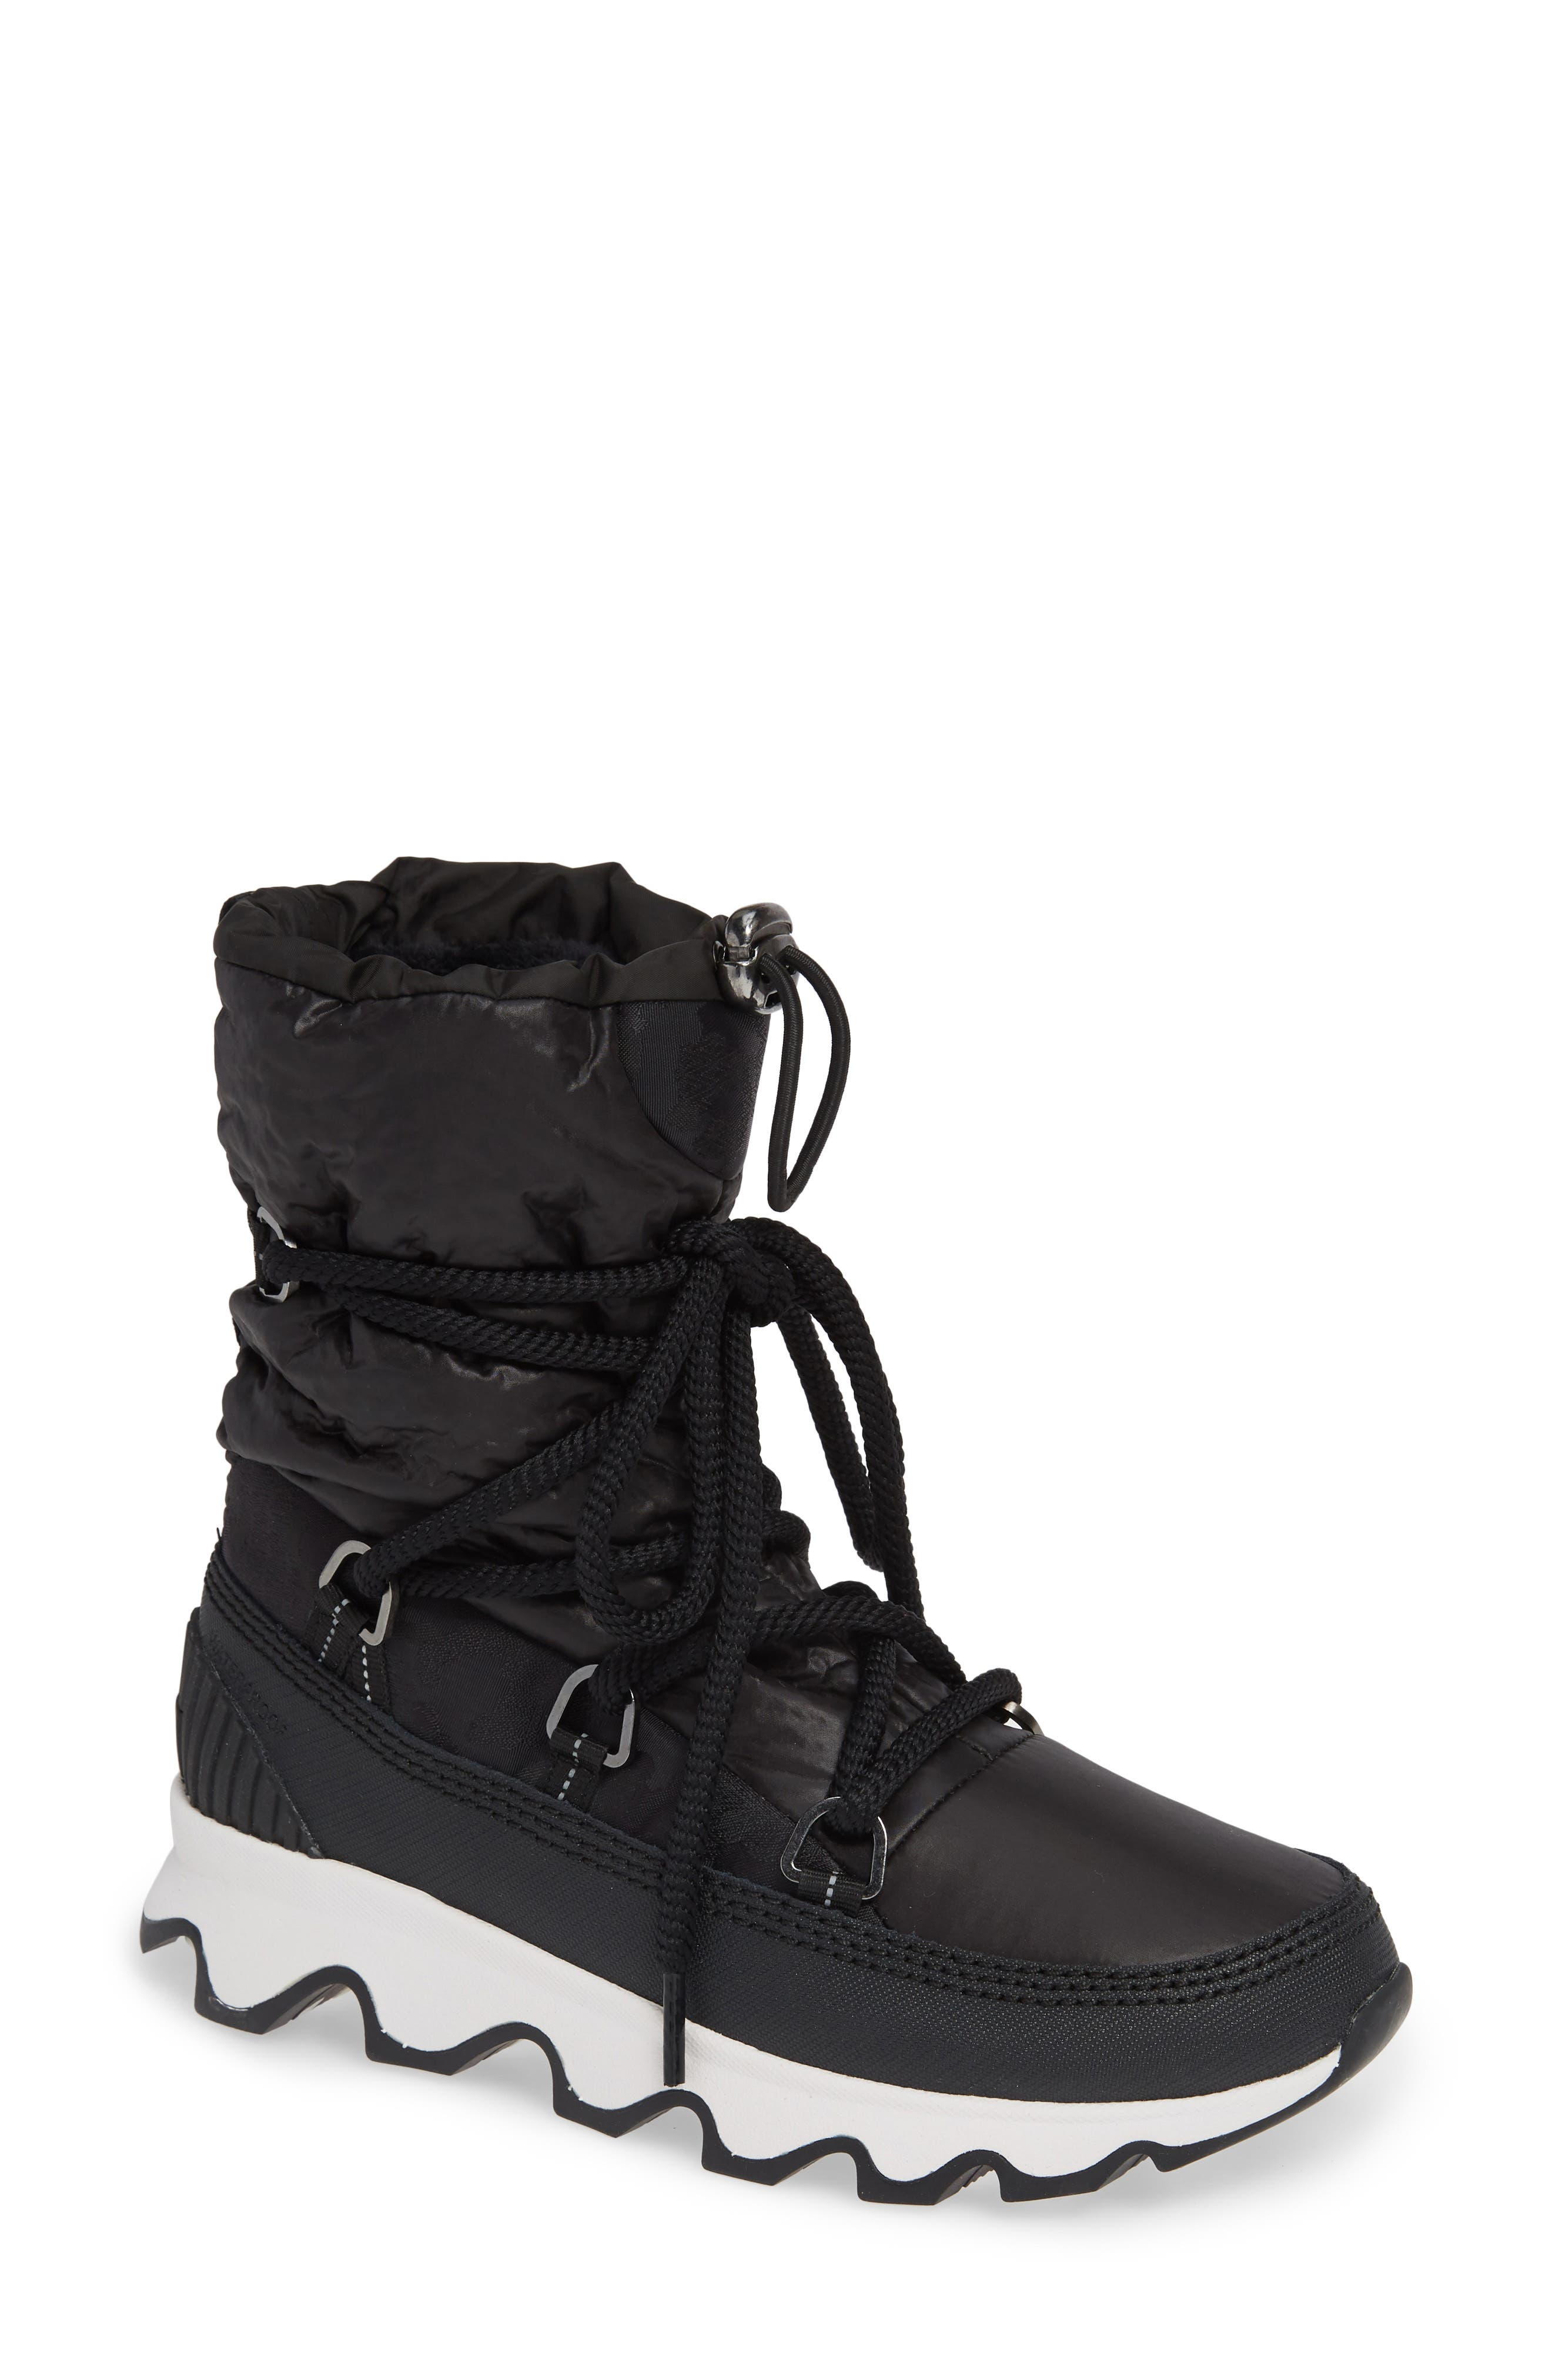 Kinetic Waterproof Insulated Winter Boot,                         Main,                         color, CAMO/ BLACK/ WHITE